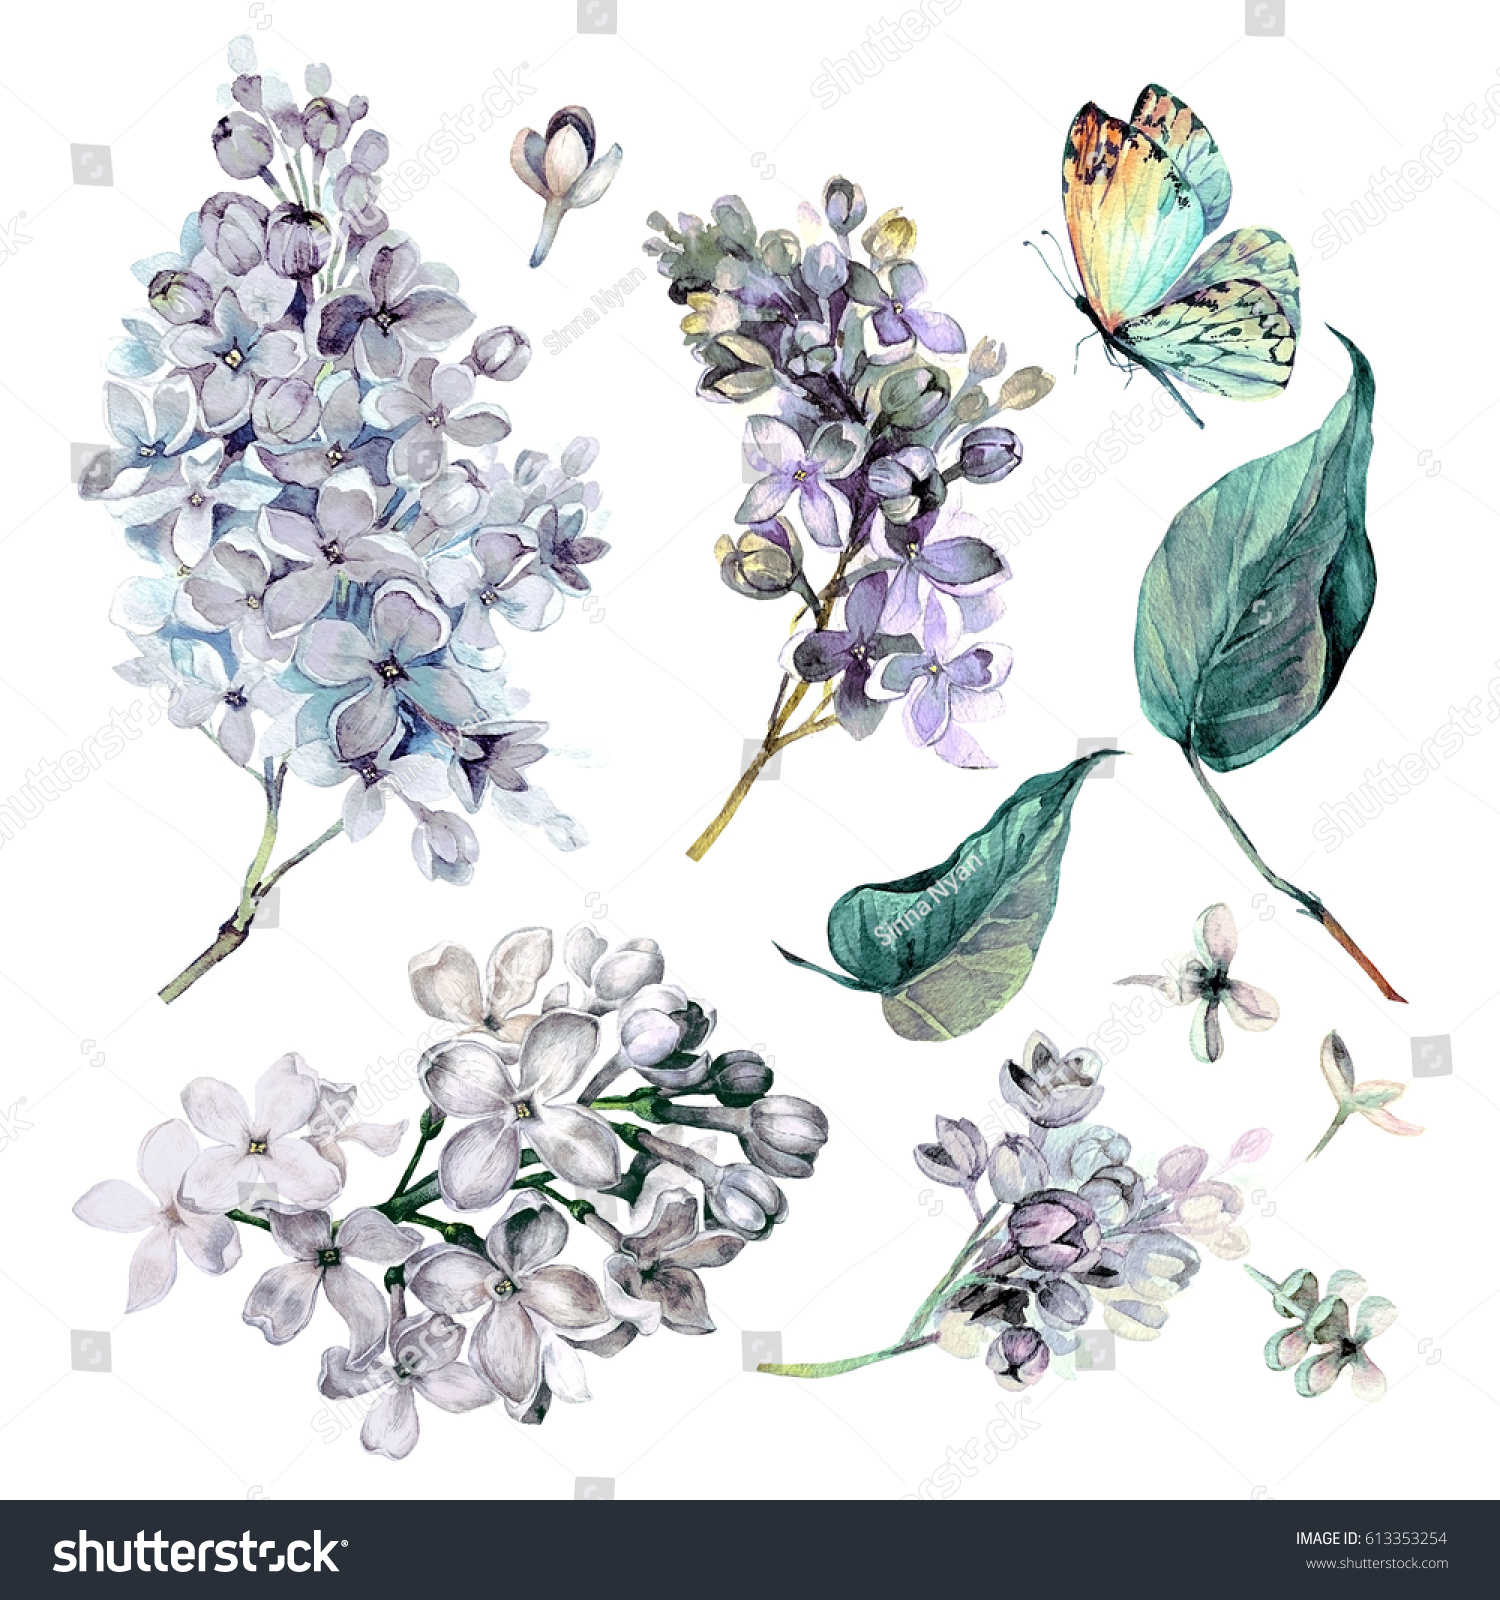 watercolor collection white lilac flowers leavesのイラスト素材